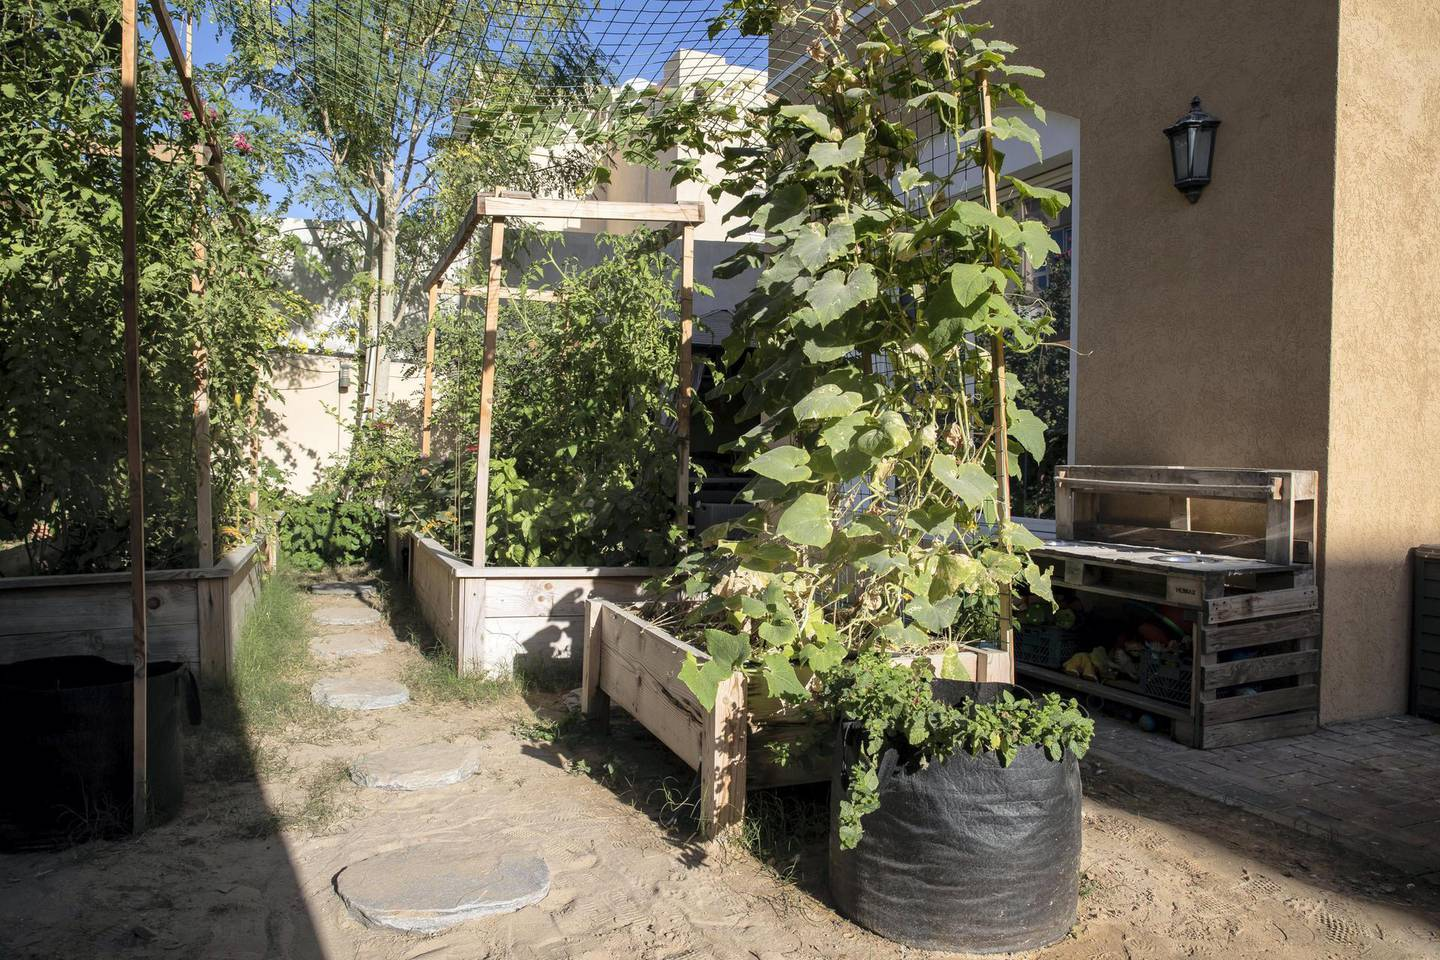 DUBAI, UNITED ARAB EMIRATES. 12 JANUARY 2021. The organic home food garden of Mohammed Al Dhuhouri, founder of Local Roots, a company that encourages sustainable organic farming. (Photo: Antonie Robertson/The National) Journalist: David Tusing. Section: Business.